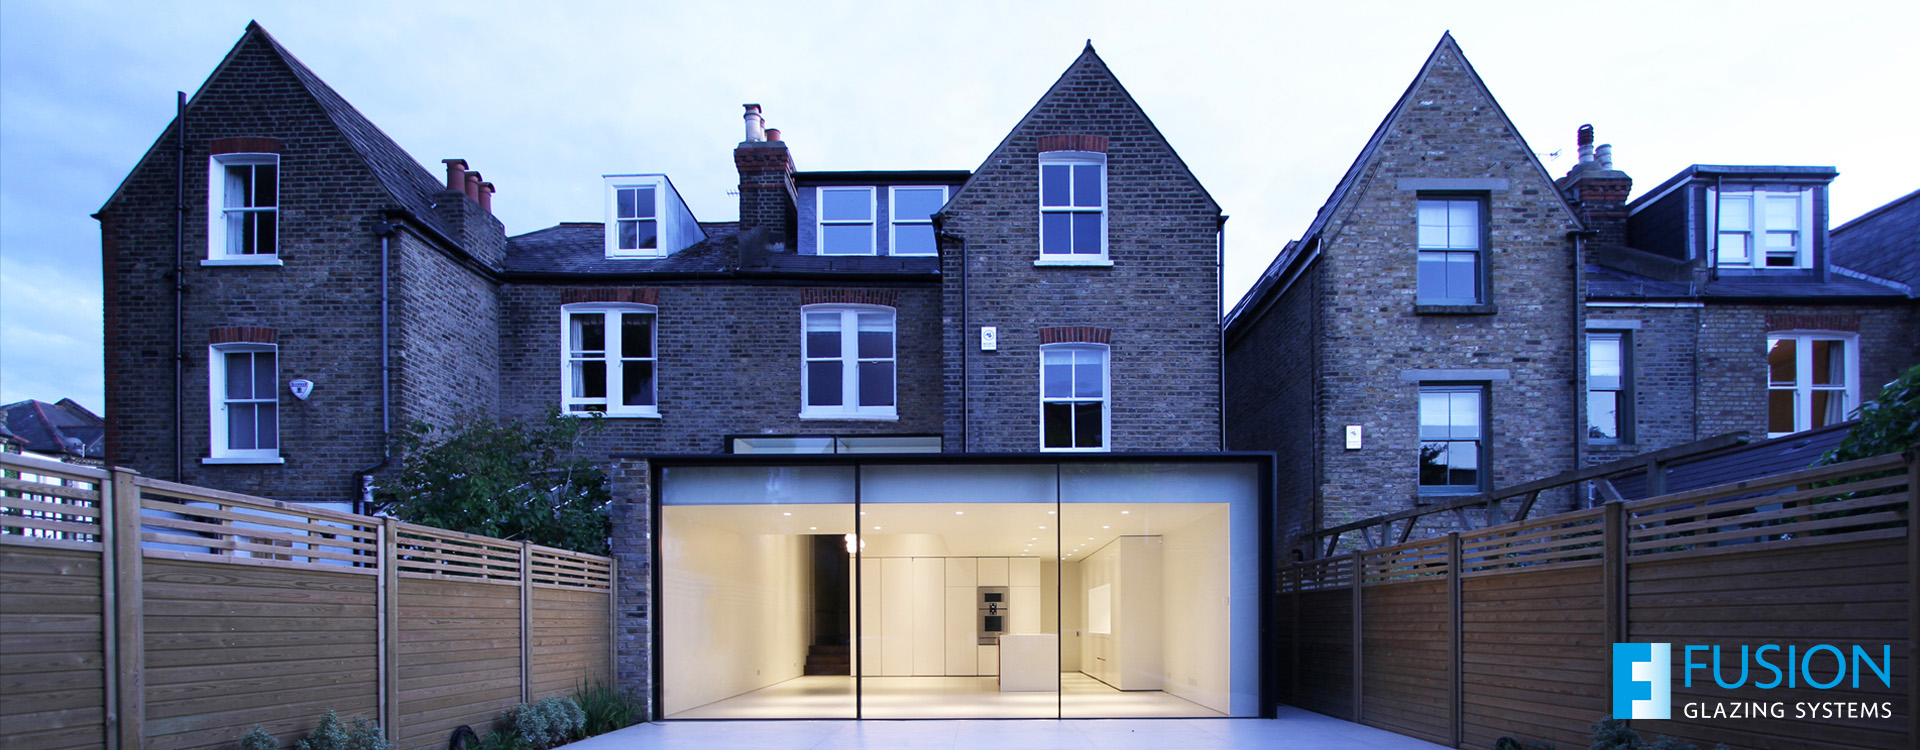 Sliding Doors London| Sliding Doors Home Counties